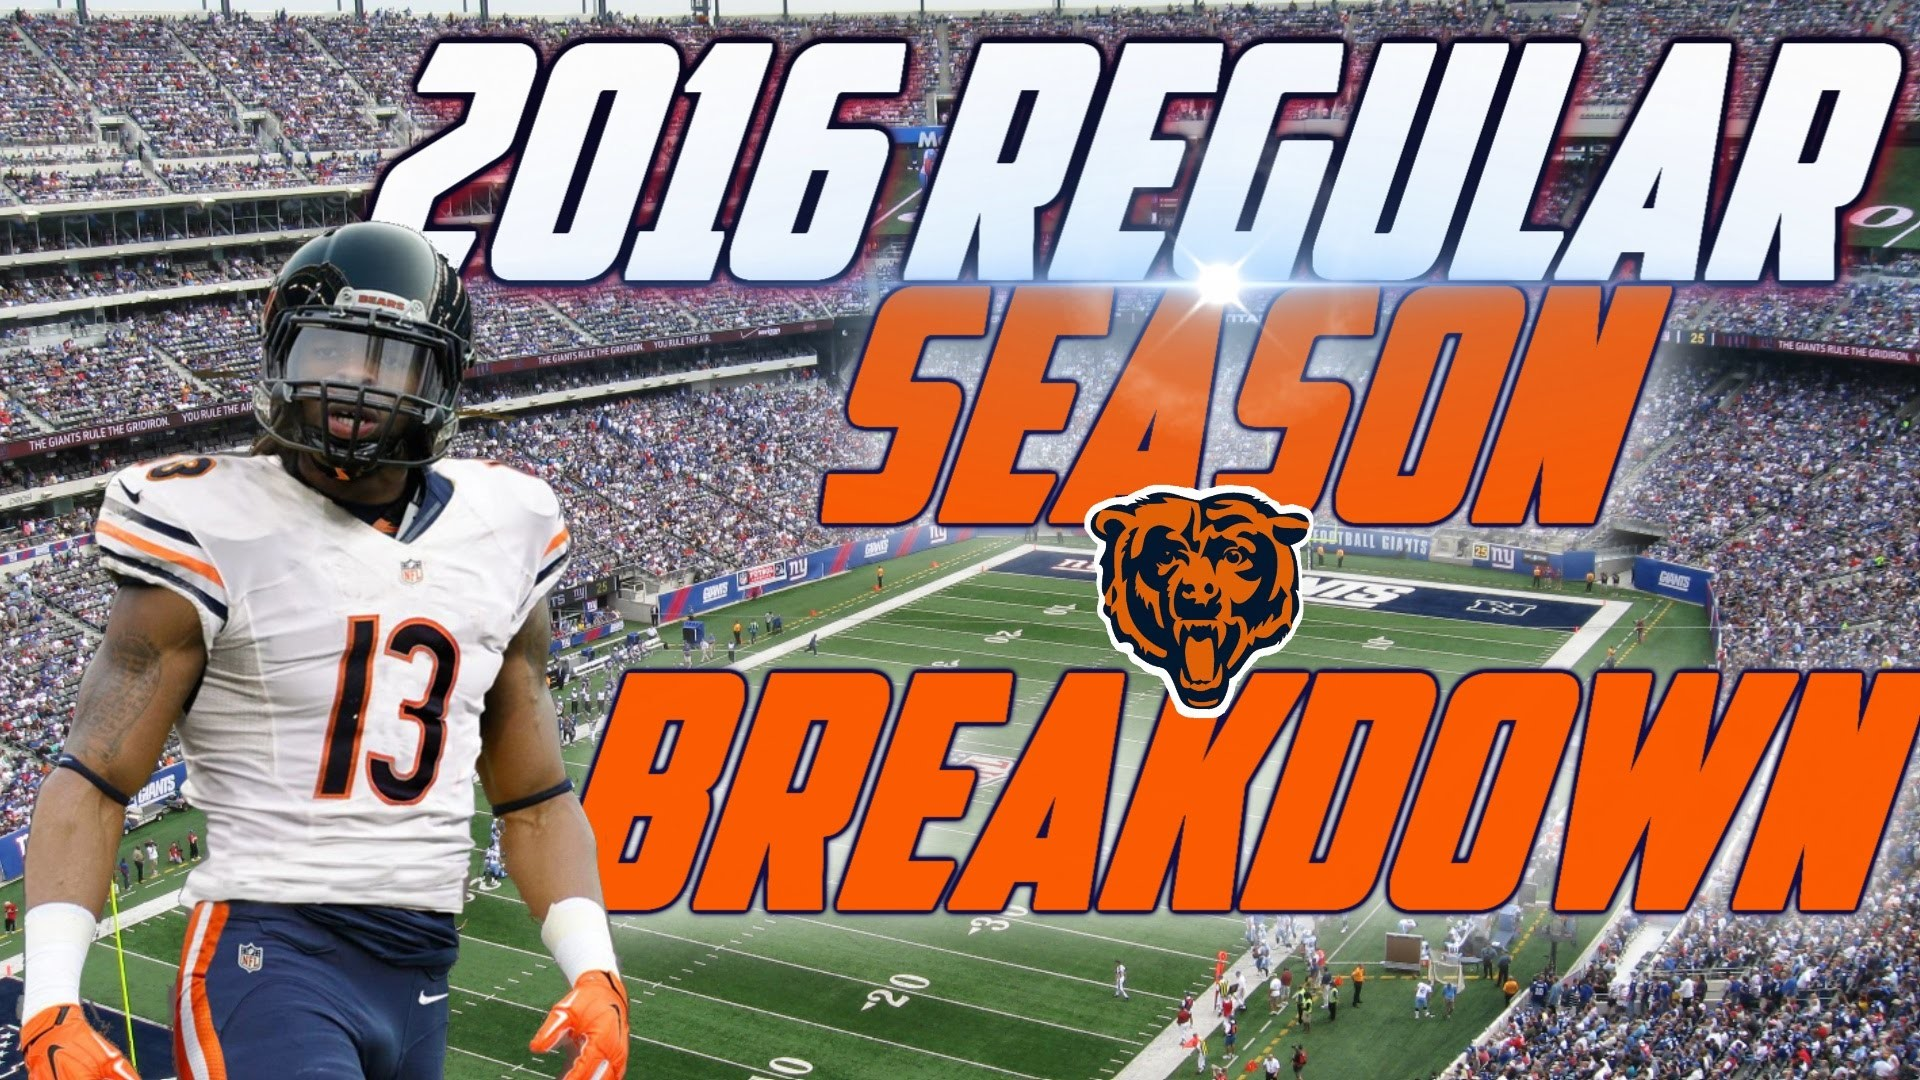 1920x1080 Chicago Bears Football News Schedule Roster Stats